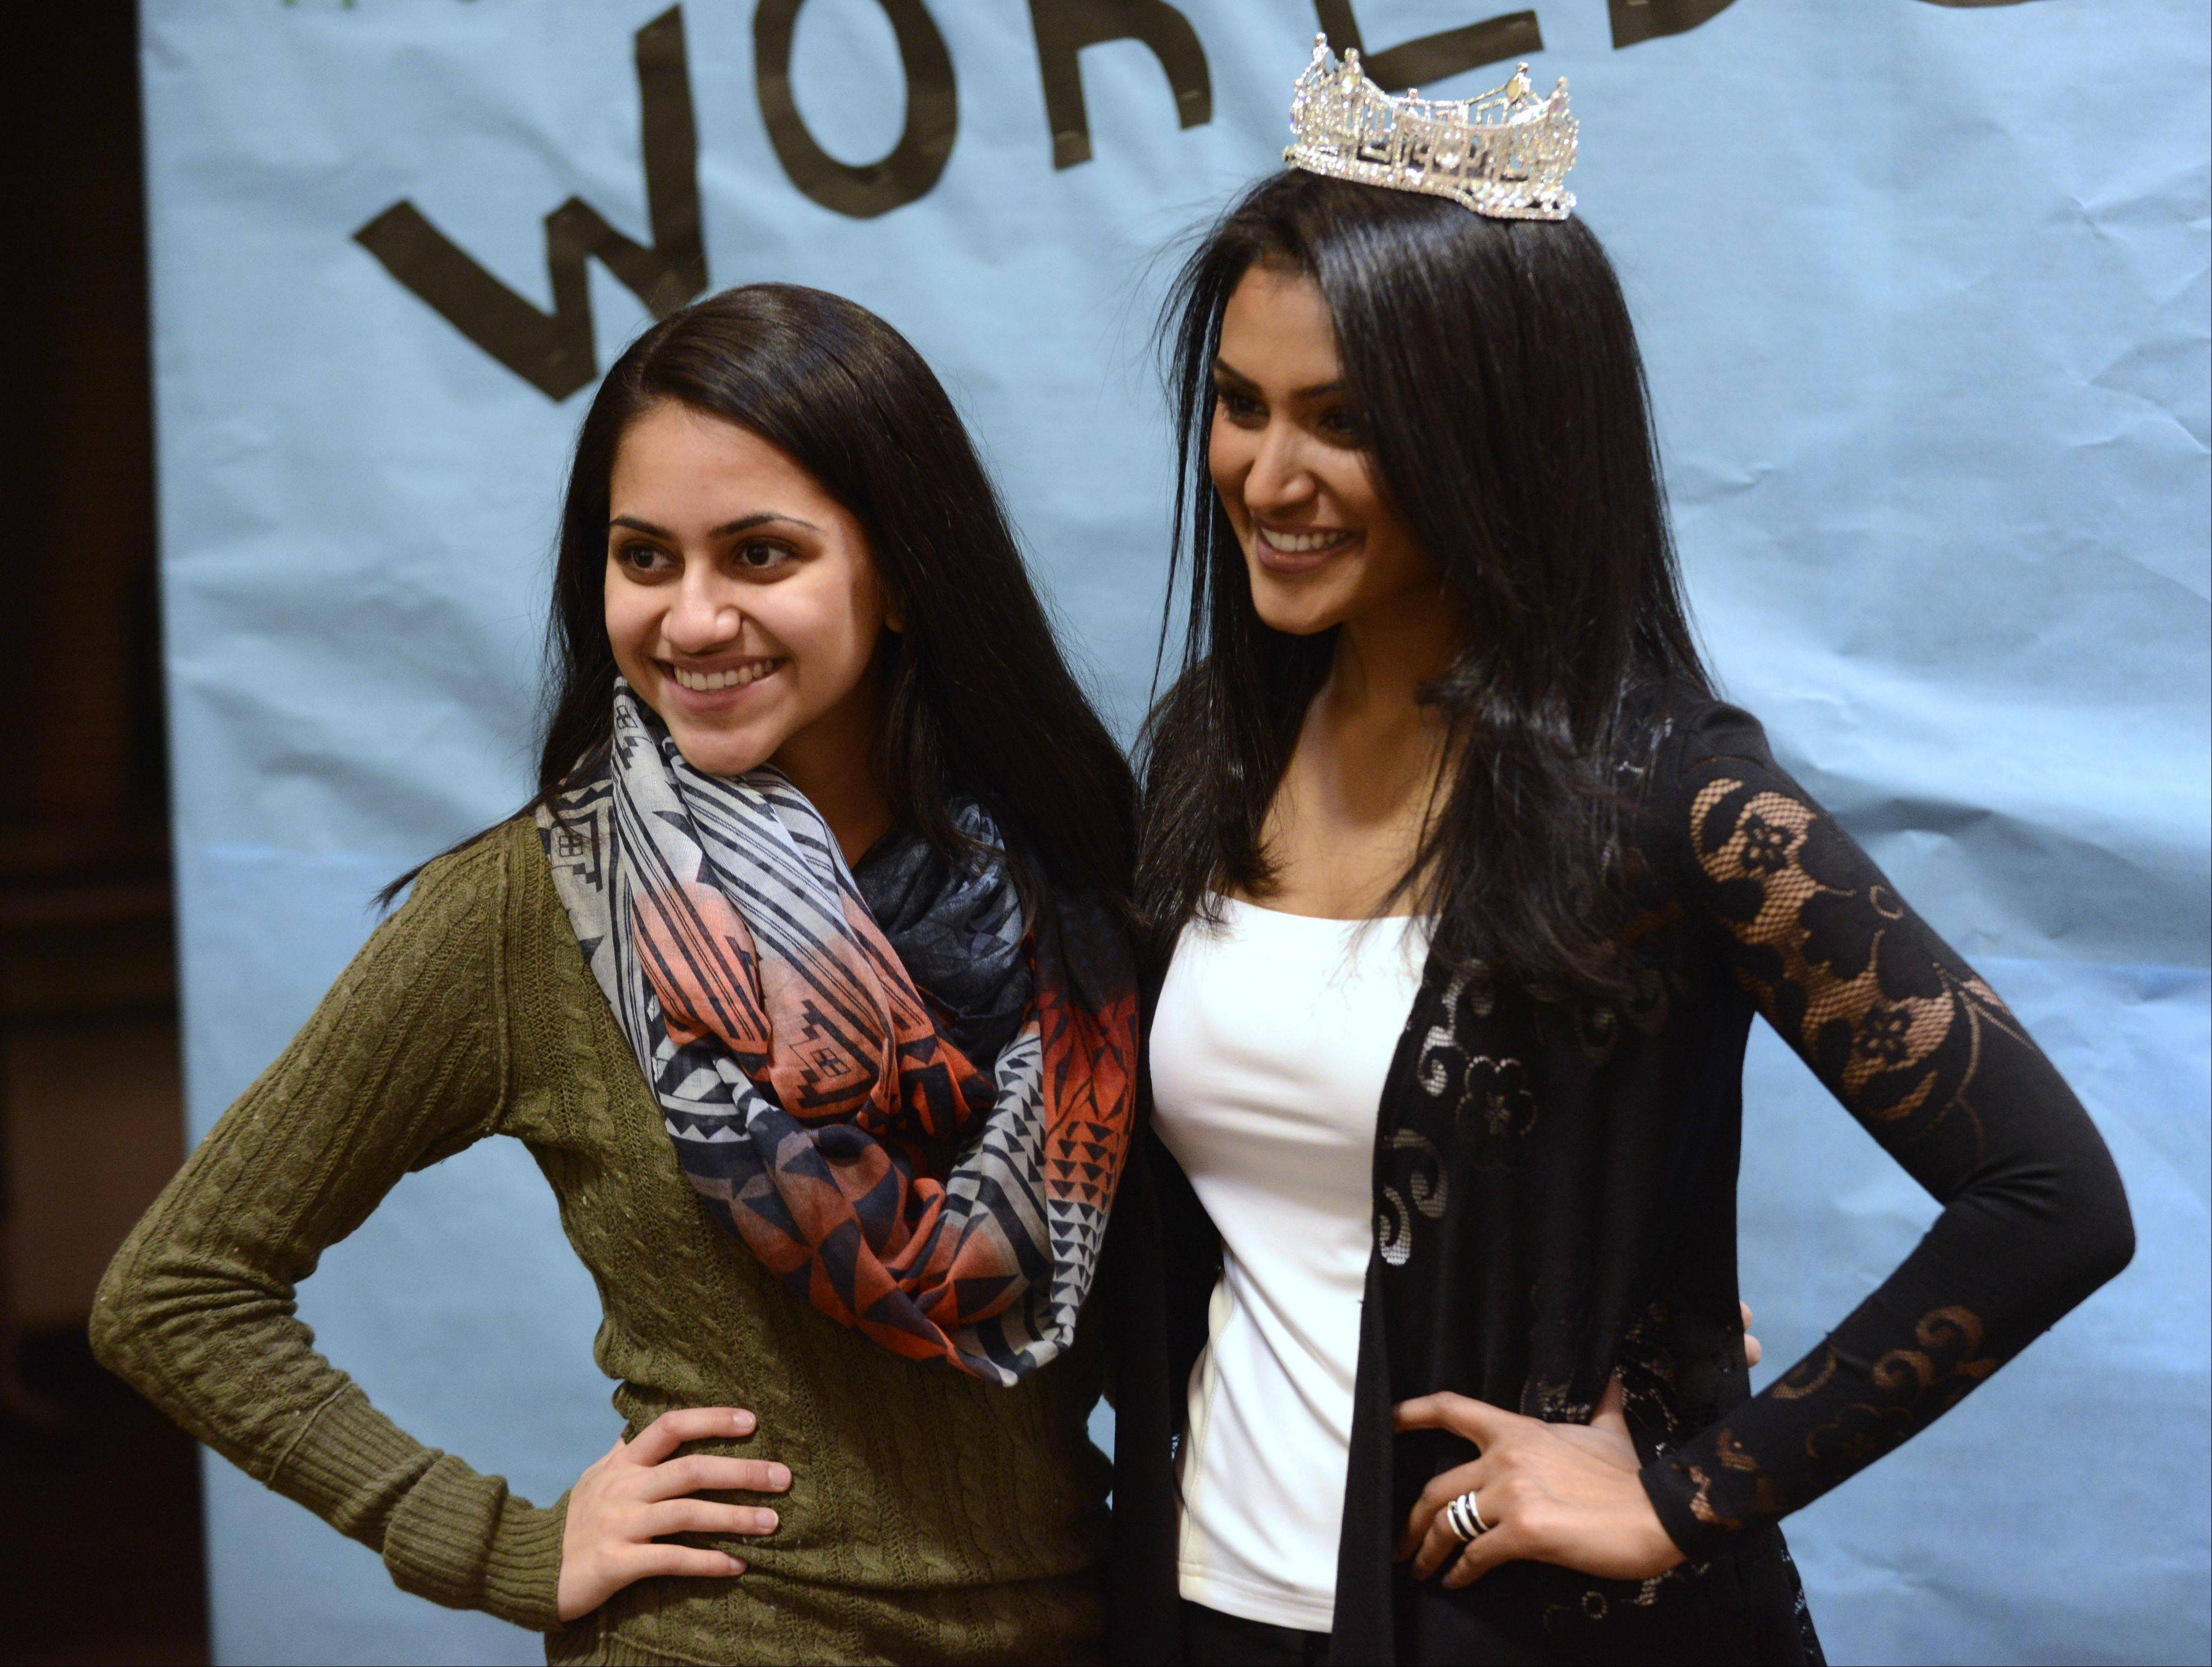 Stevenson High School sophomore Anjali Patel poses for a photo with Nina Davuluri, Miss America 2014, during her visit Saturday at the Stevenson High School World's Fair event in Lincolnshire.